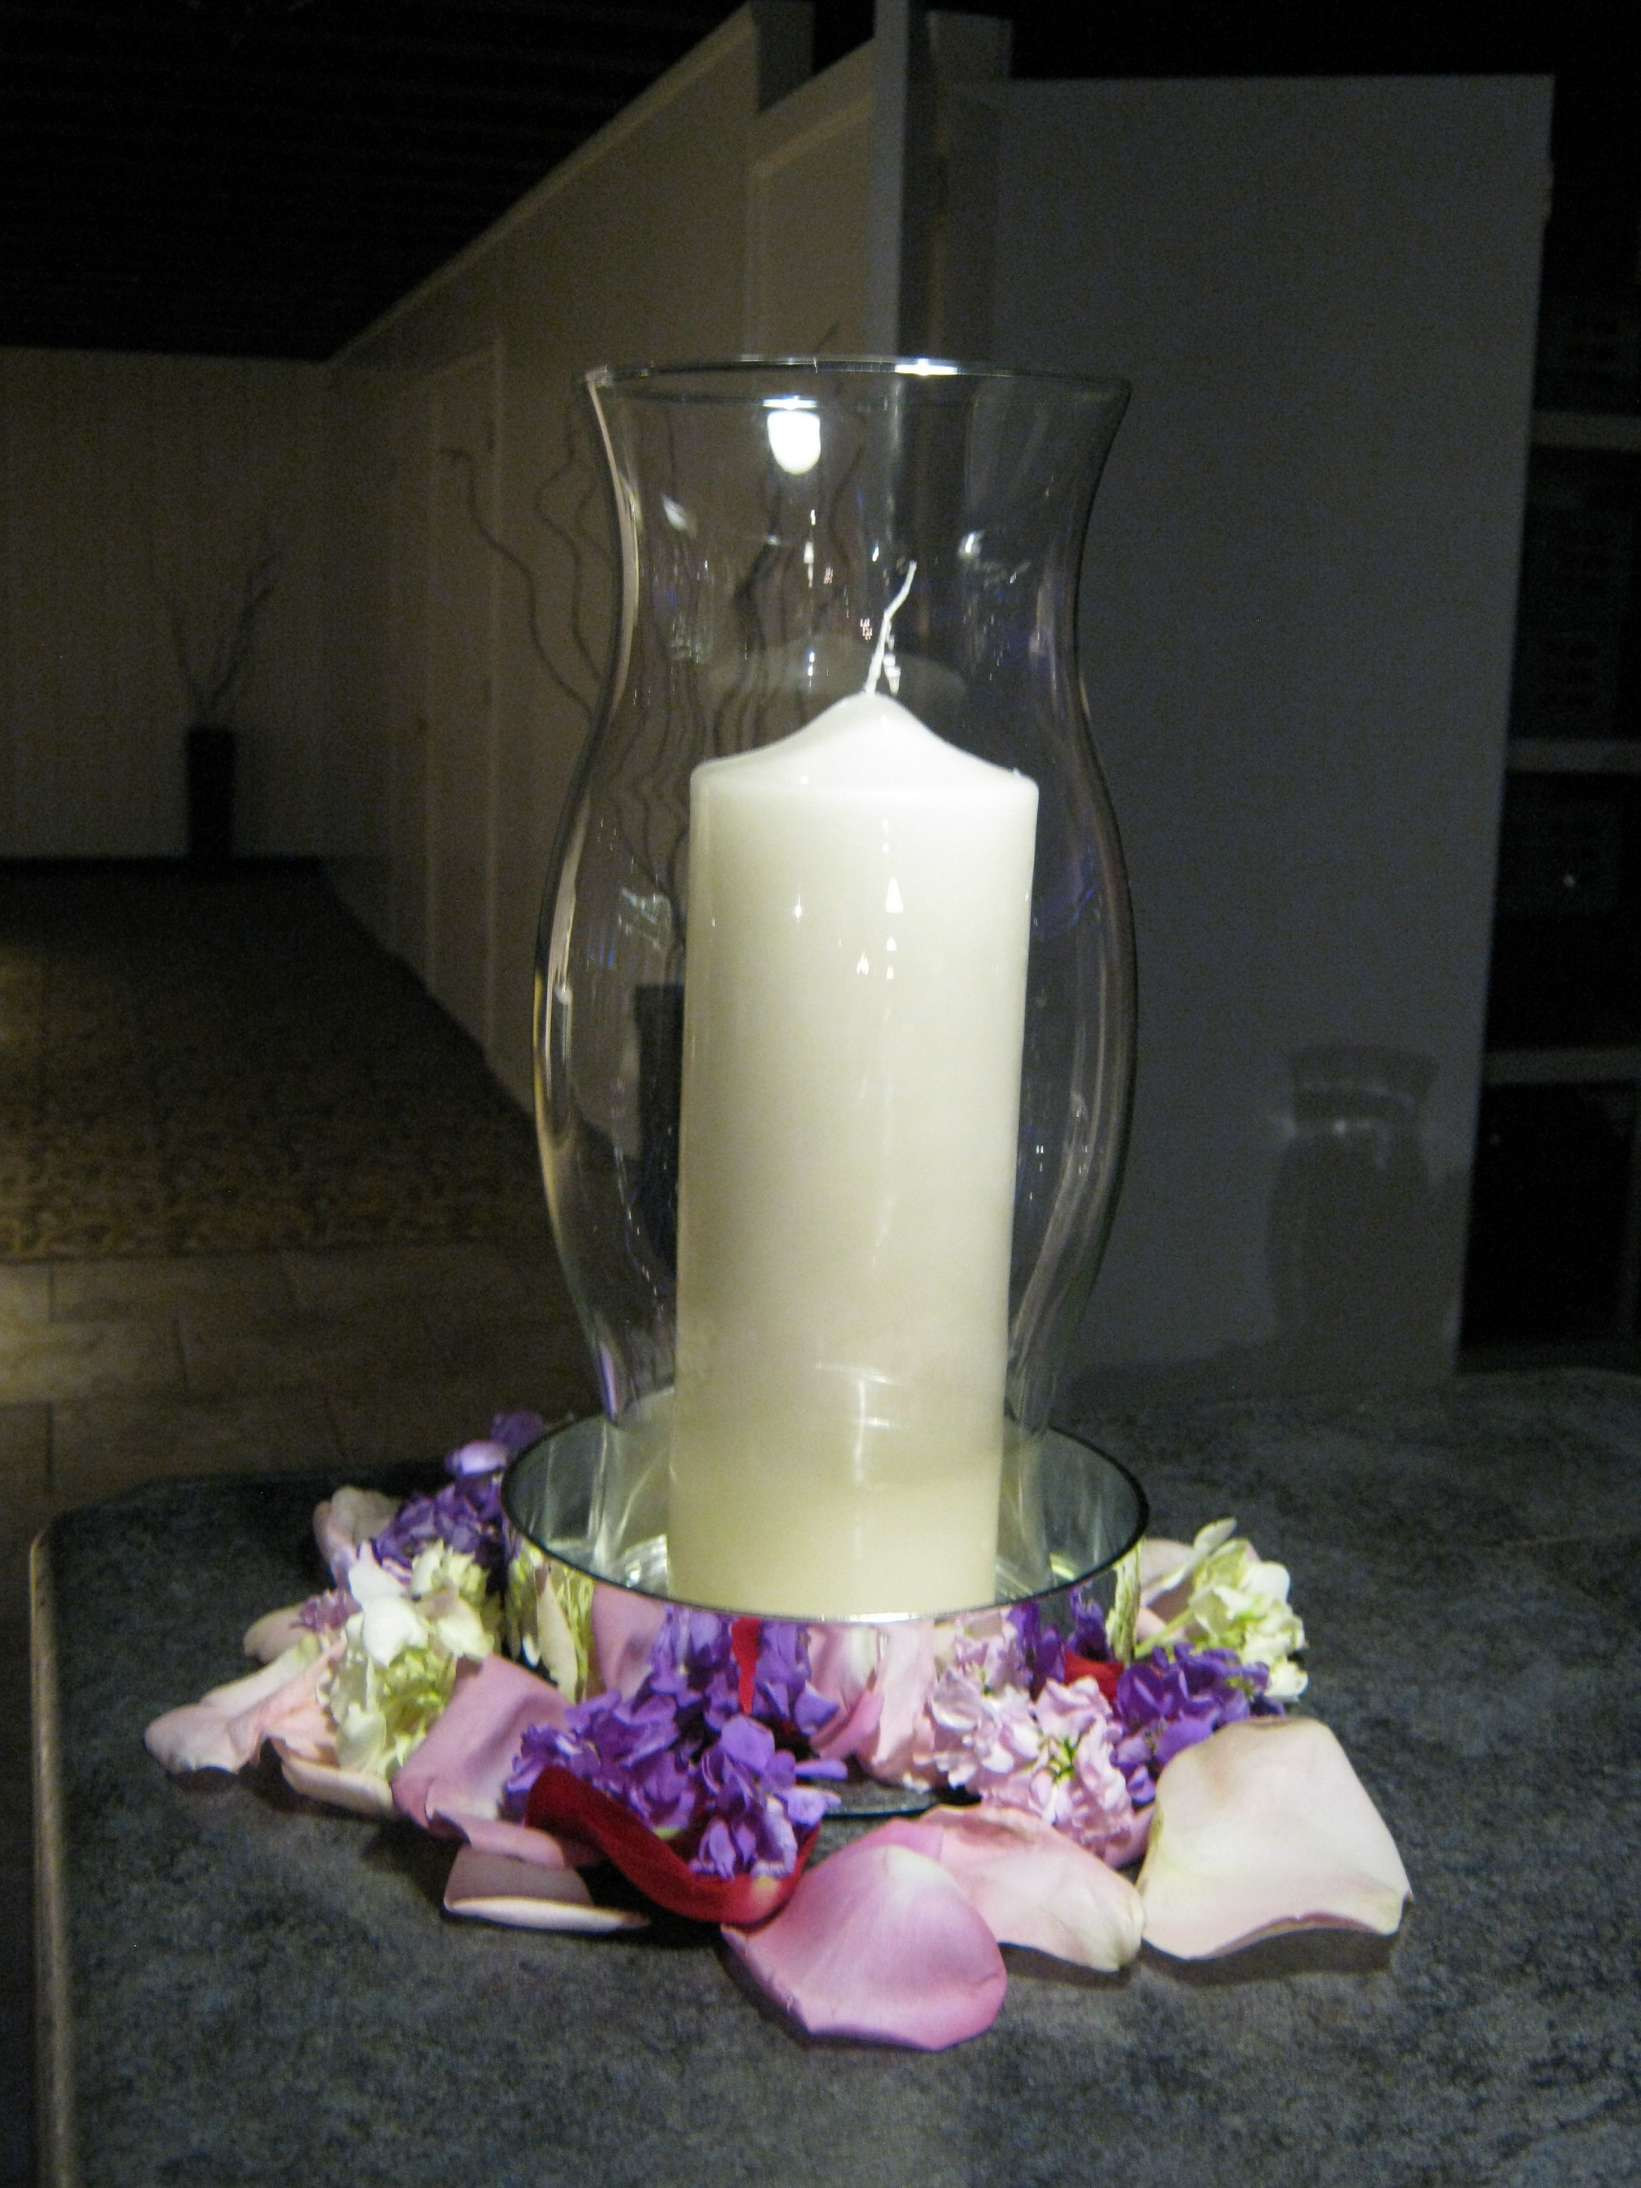 Mosaic Floor Vase Of Large Hurricane Vase Inspirational since Hurricane Vase with Candle Intended for Large Hurricane Vase Inspirational since Hurricane Vase with Candle and Flowers at the Base